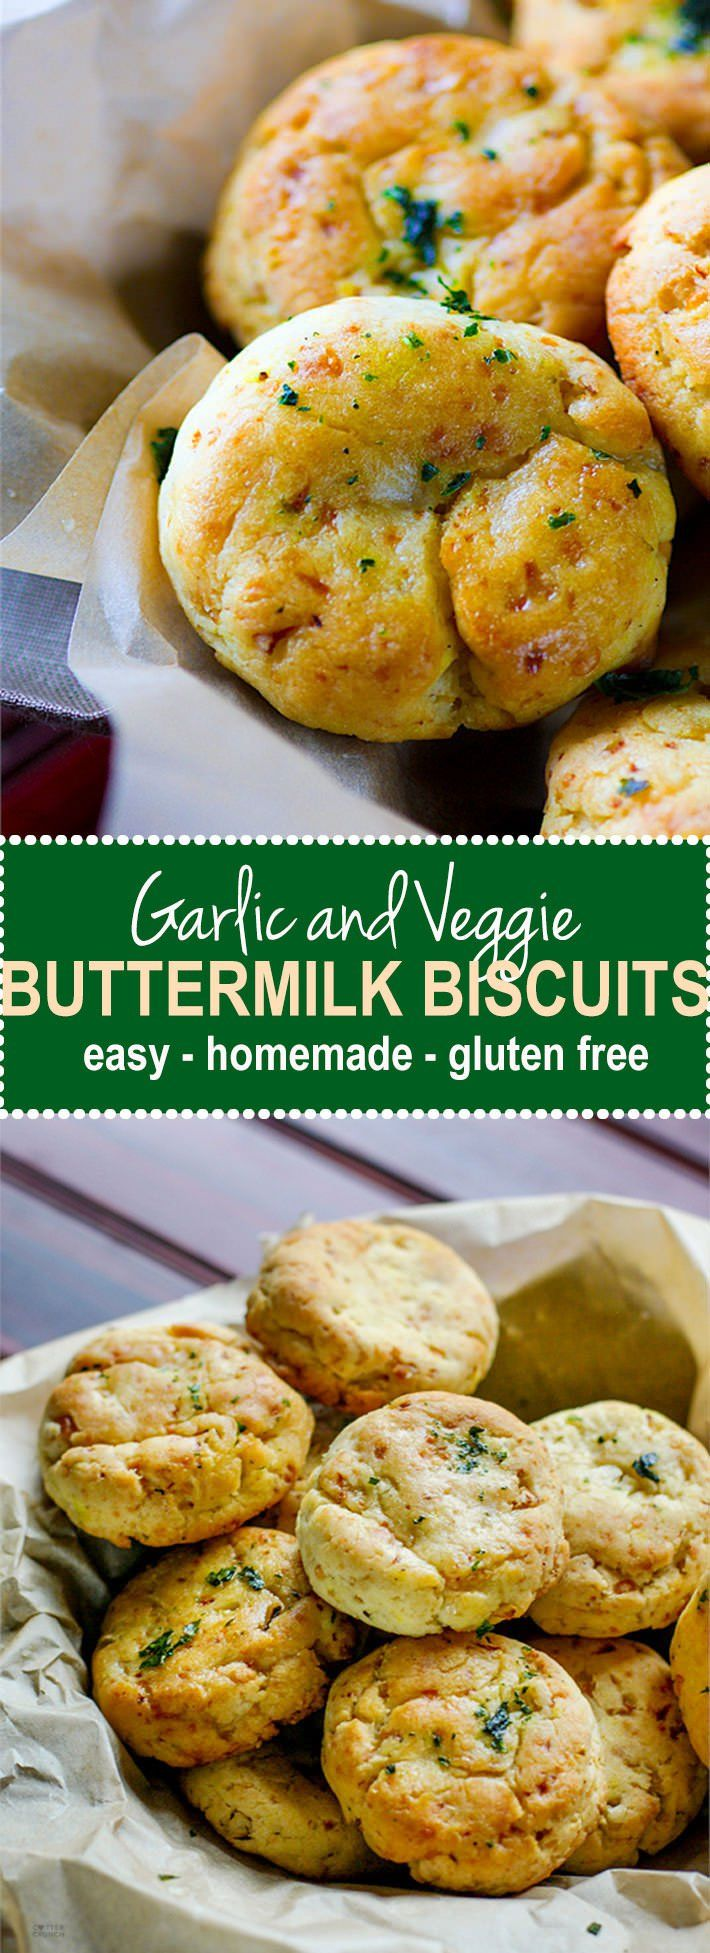 Easy Homemade Gluten Free Buttermilk Biscuits! These gluten free buttermilk biscuits are so delicious, healthy, and packed with extra veggies for great texture and taste. A great way to sneak in more vegetables to your diet without even knowing. Simple to make, ready in 30 minutes, and a total crowd pleaser for both gluten free and non gluten free eaters! Egg free. Yeast free